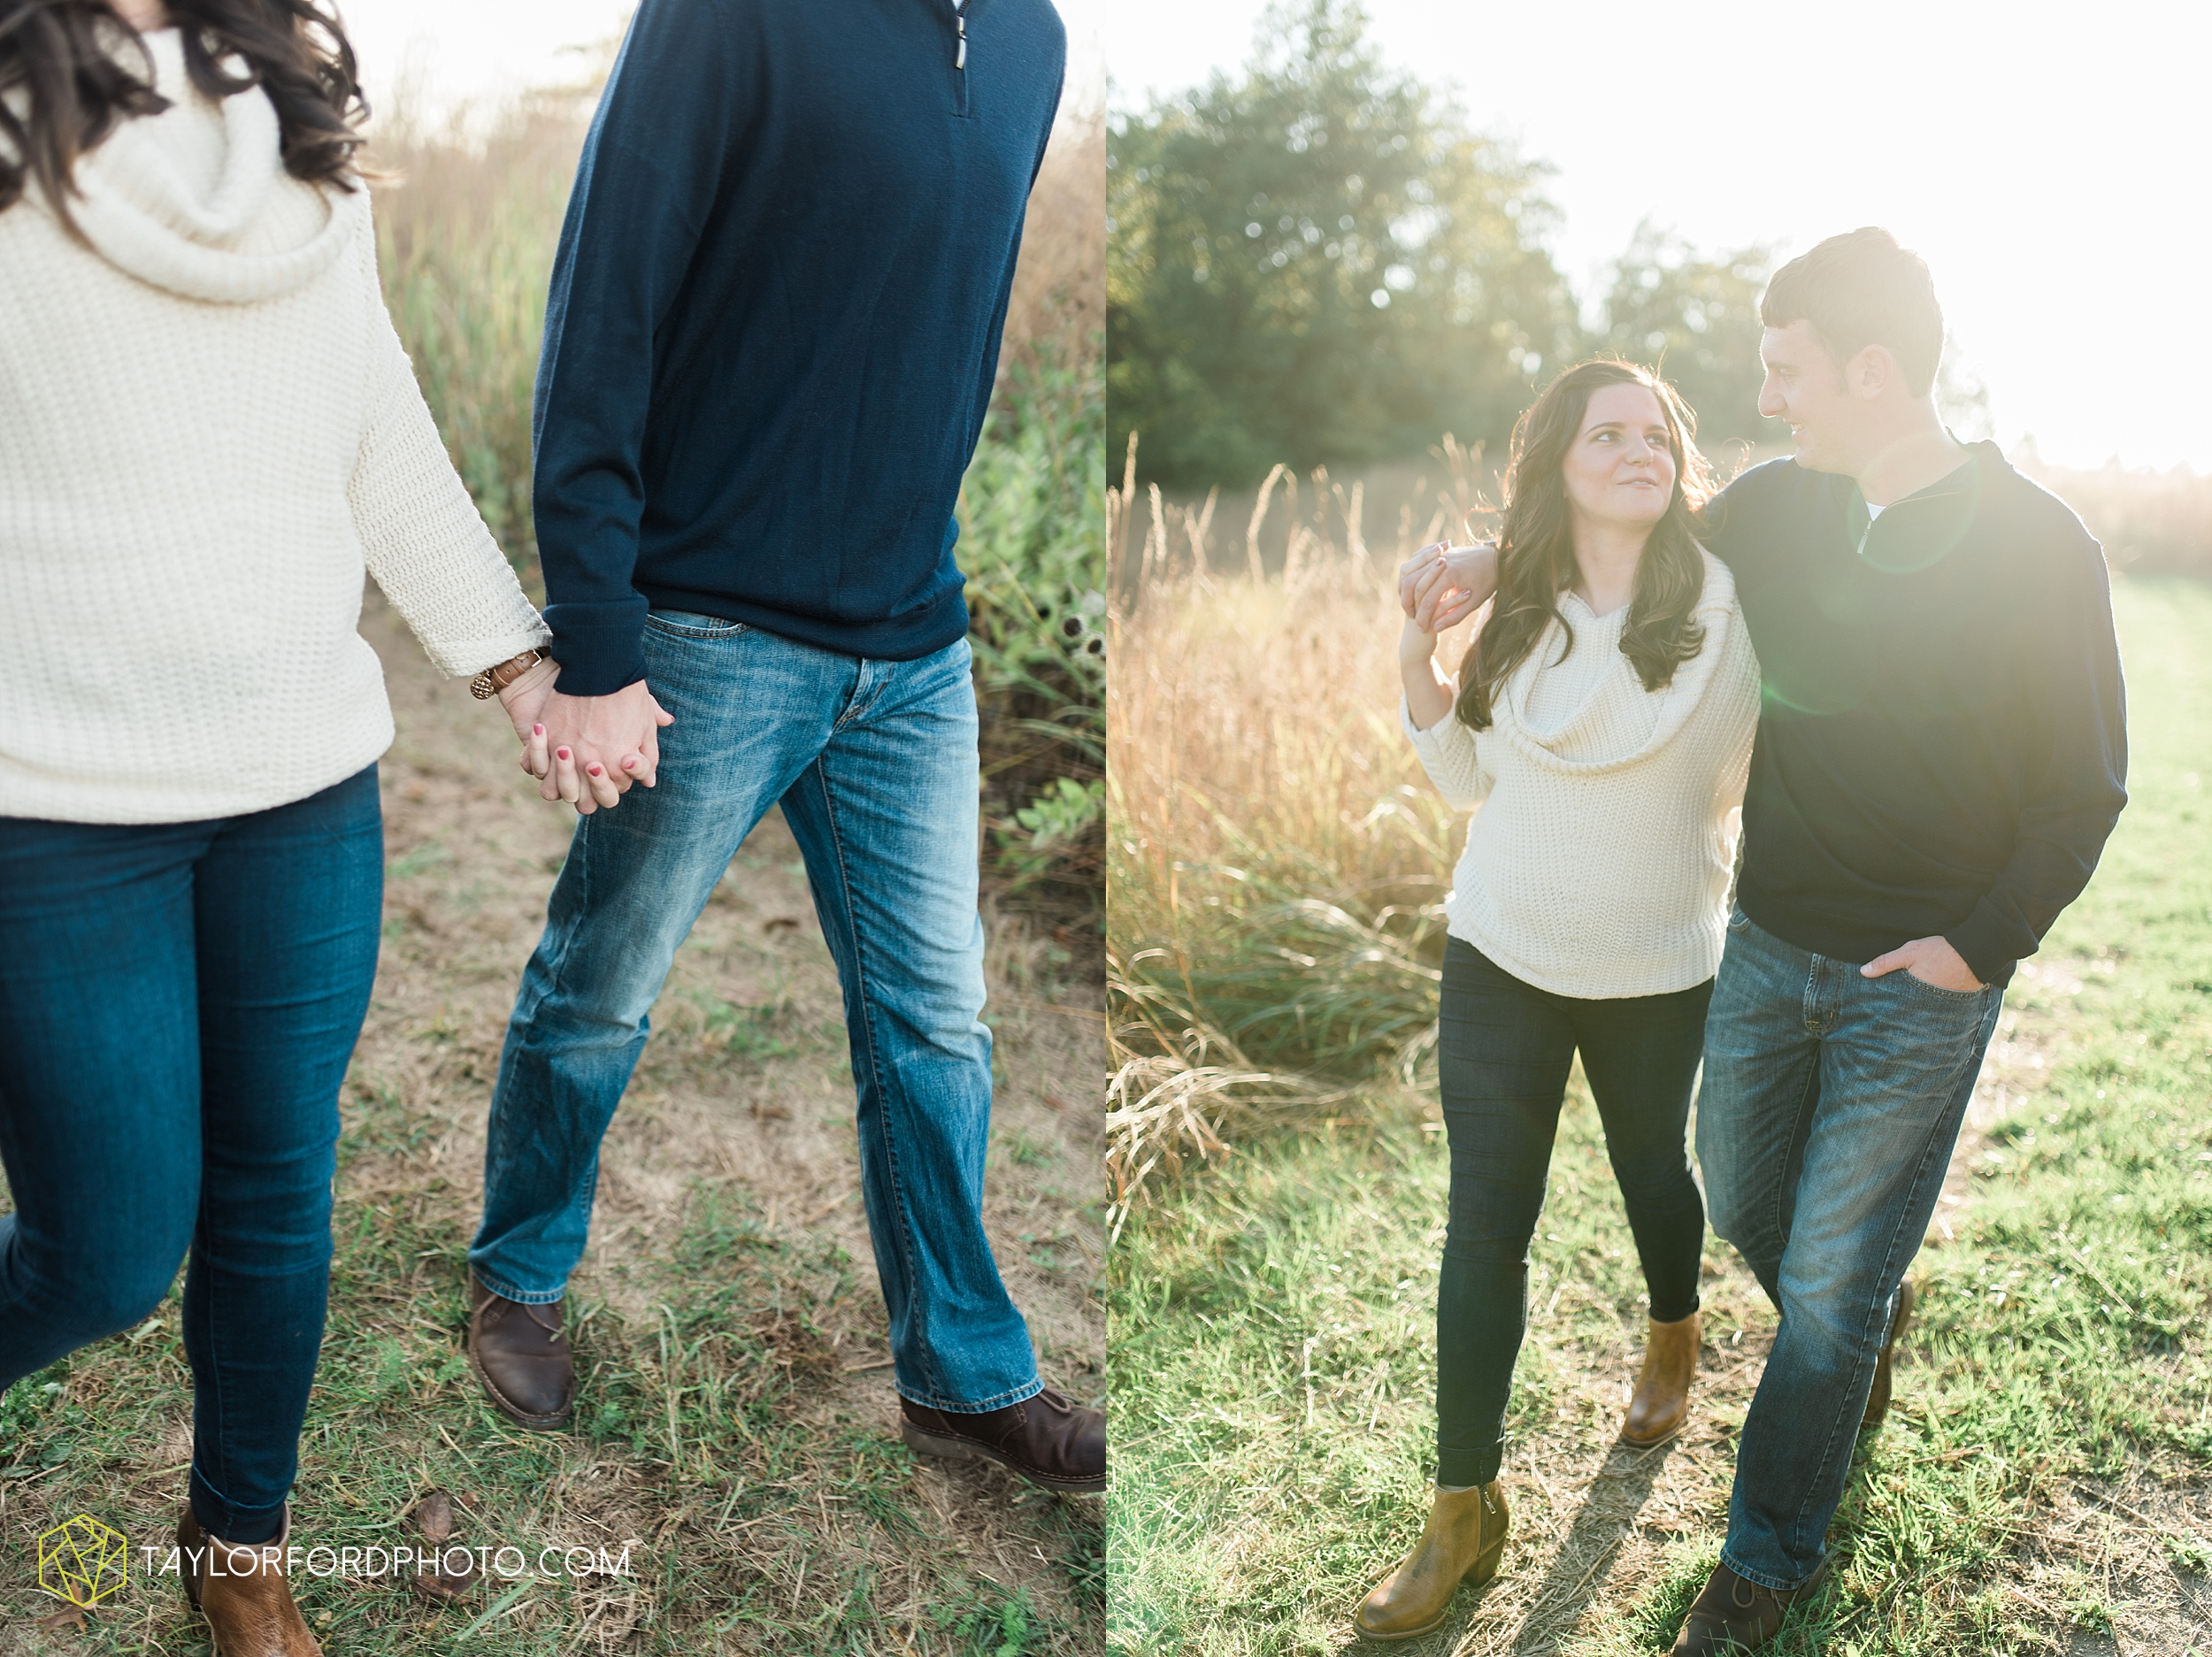 fort-wayne-indiana-engagement-wedding-photographer-Taylor-Ford-Photography-salomon-farm-park_3562.jpg